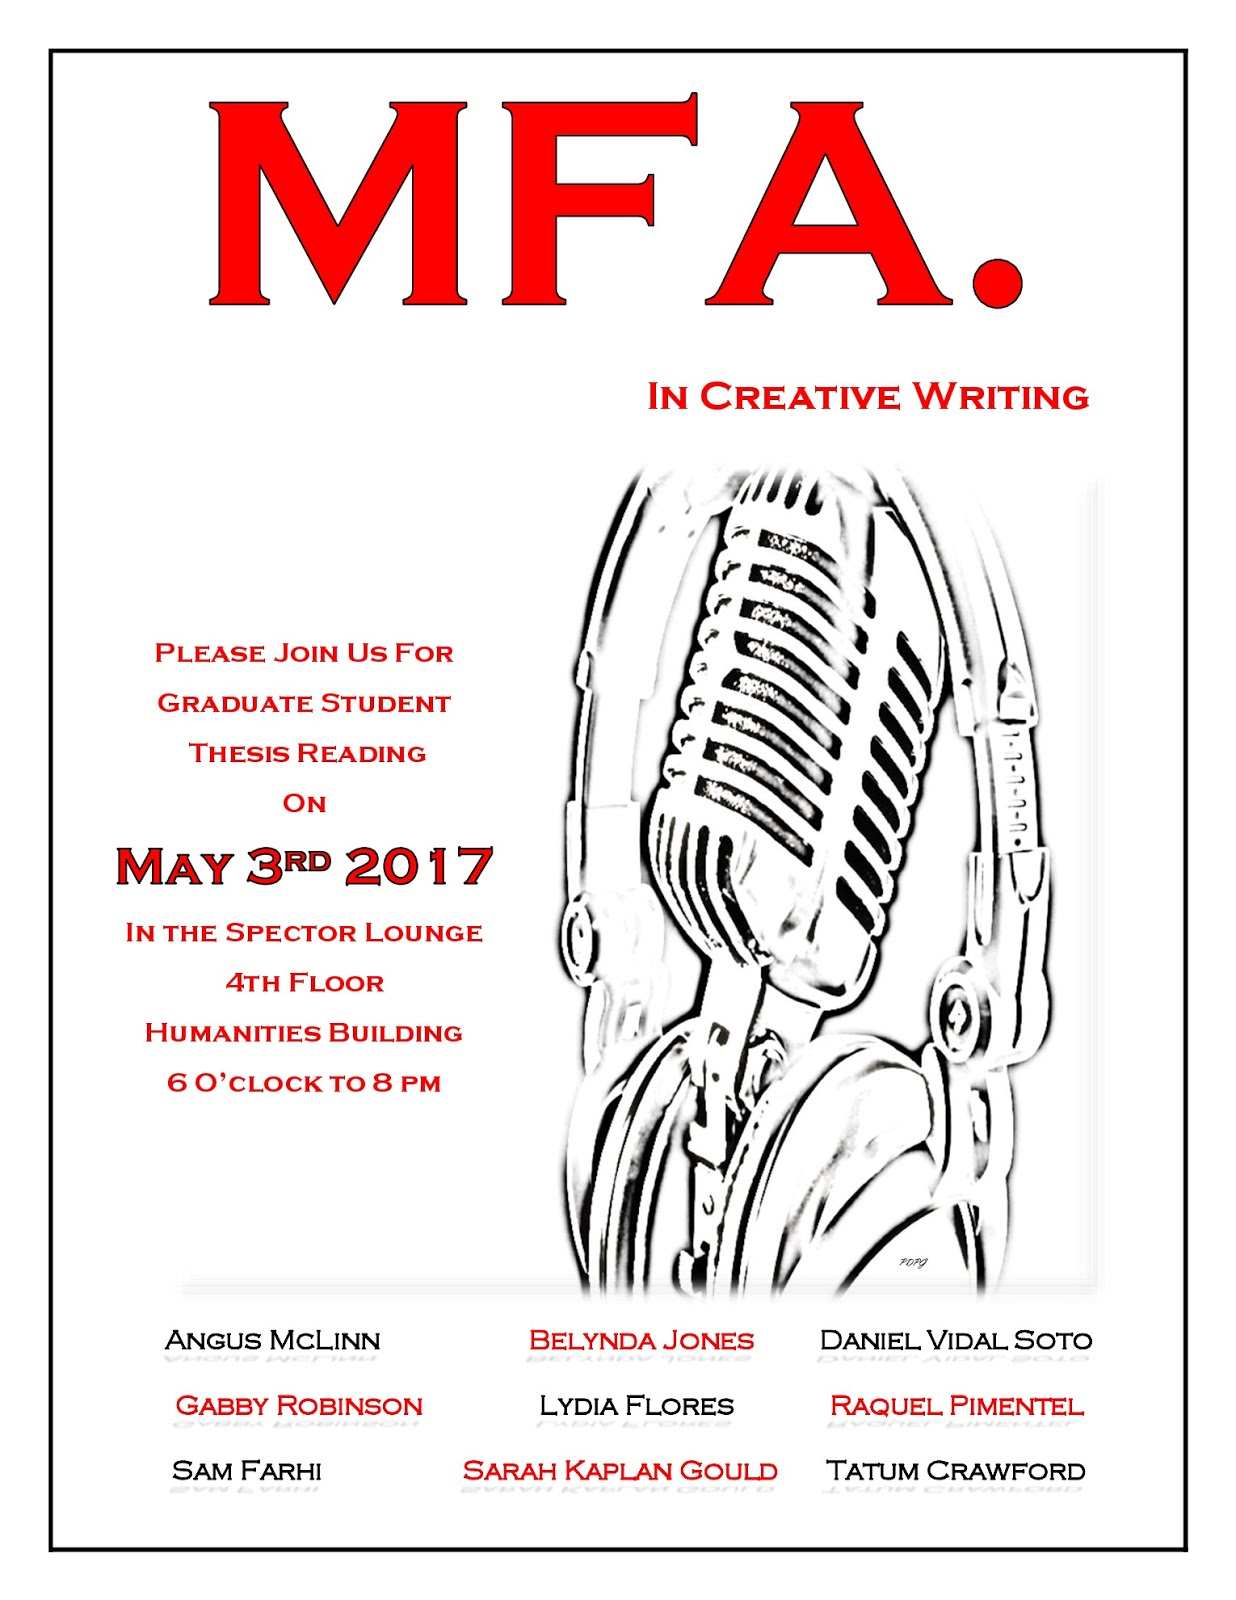 mfa creative writing requirements Creative writing | mfa apply now application requirements learn more about this program application deadline for summer ii 2018: may 1, 2018 new england college's master of fine arts in creative writing program is a truly transformative learning experience for writers.